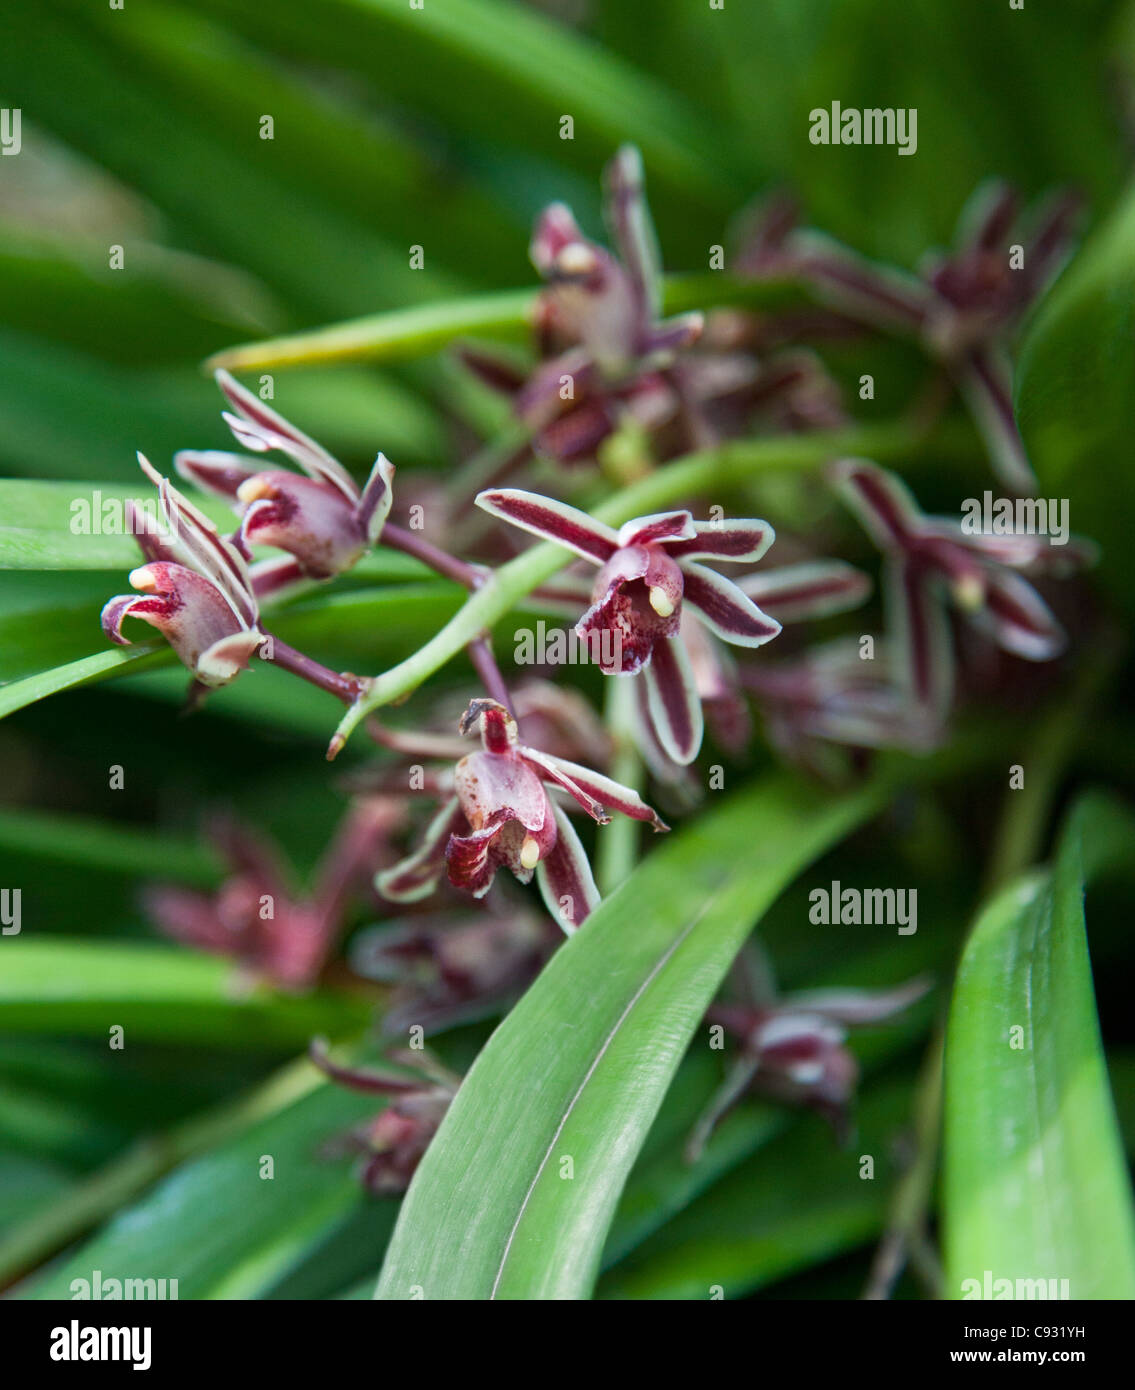 The beautiful orchid Cymbidium aloifolium, which is found in Asia and the Far East. Stock Photo